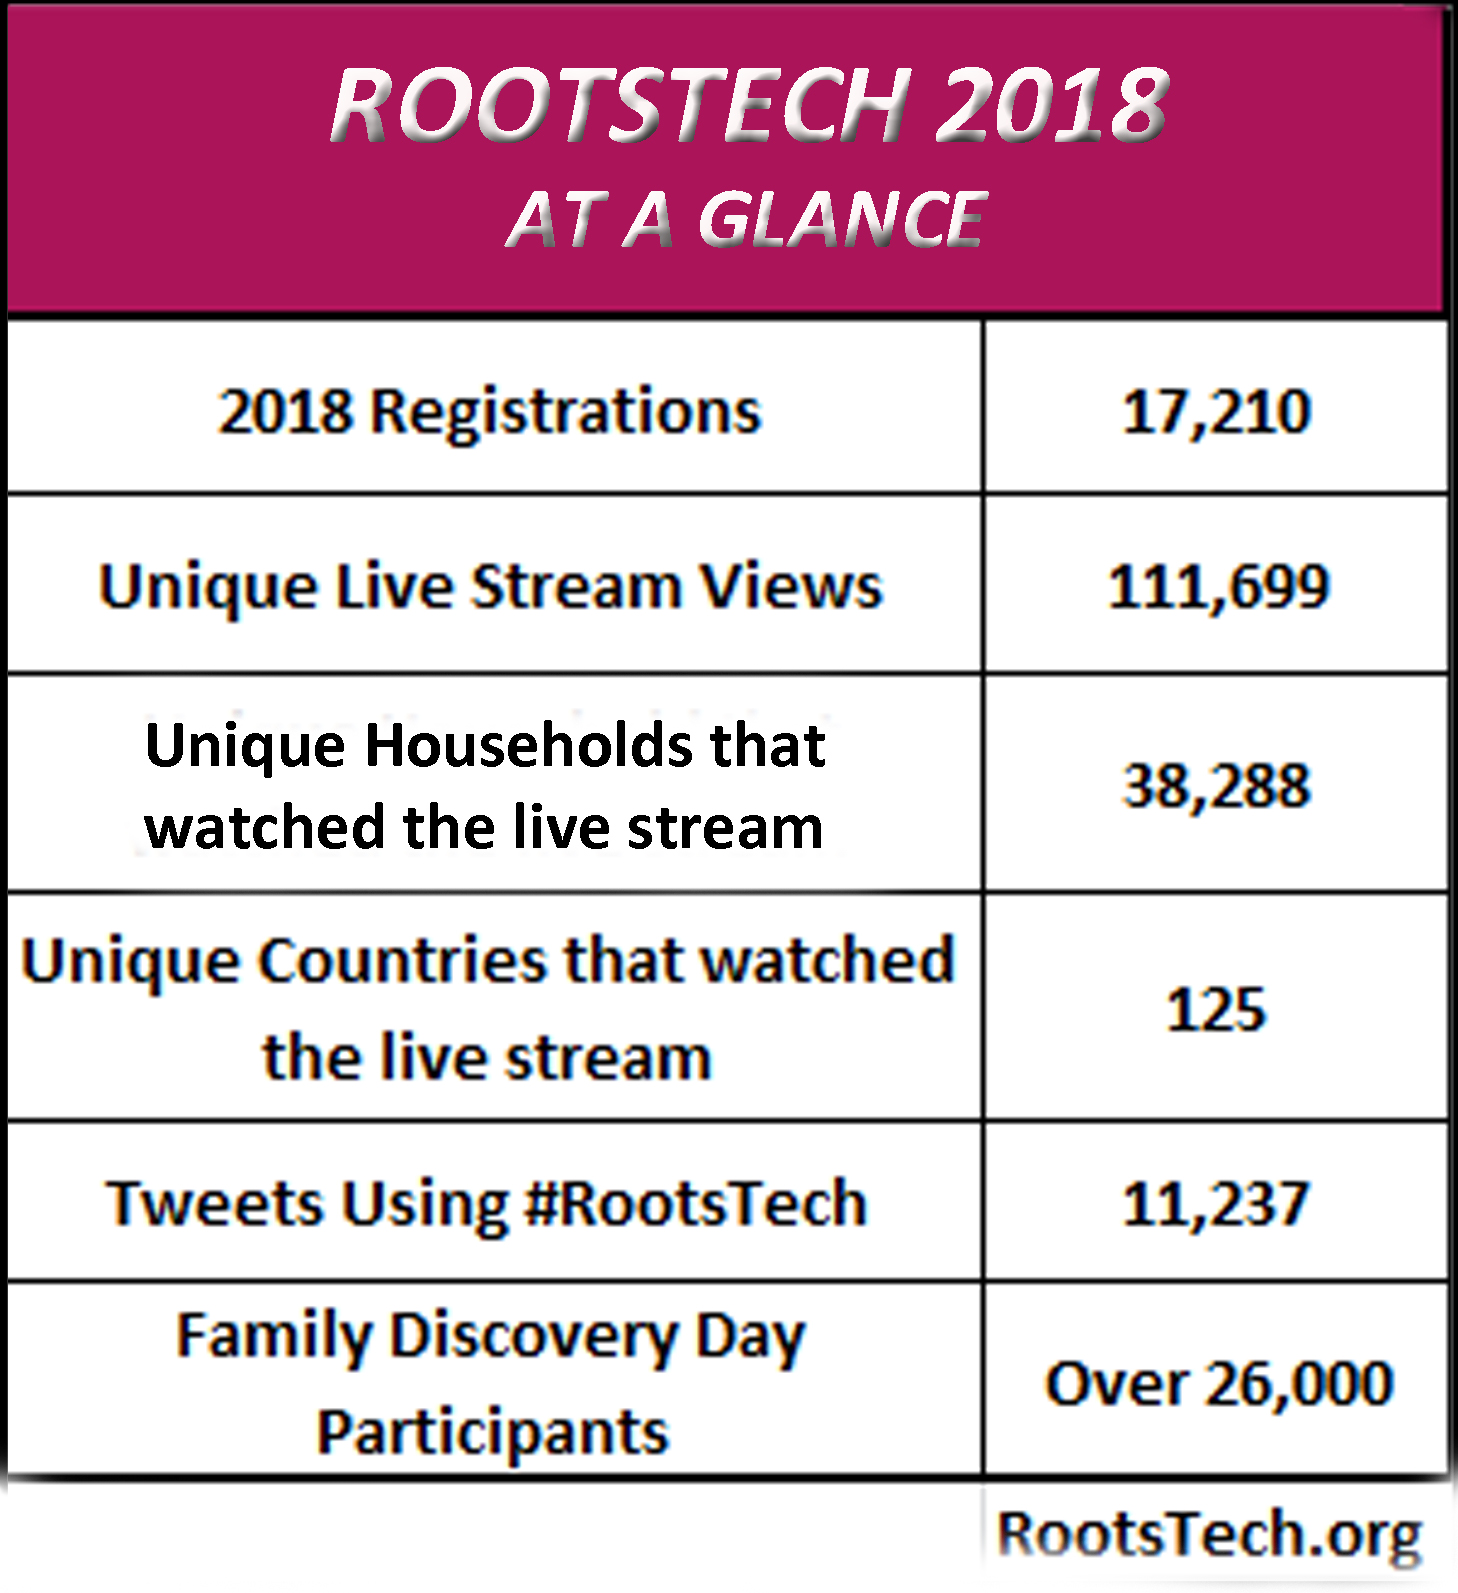 RootsTech 2018 Facts and Figures